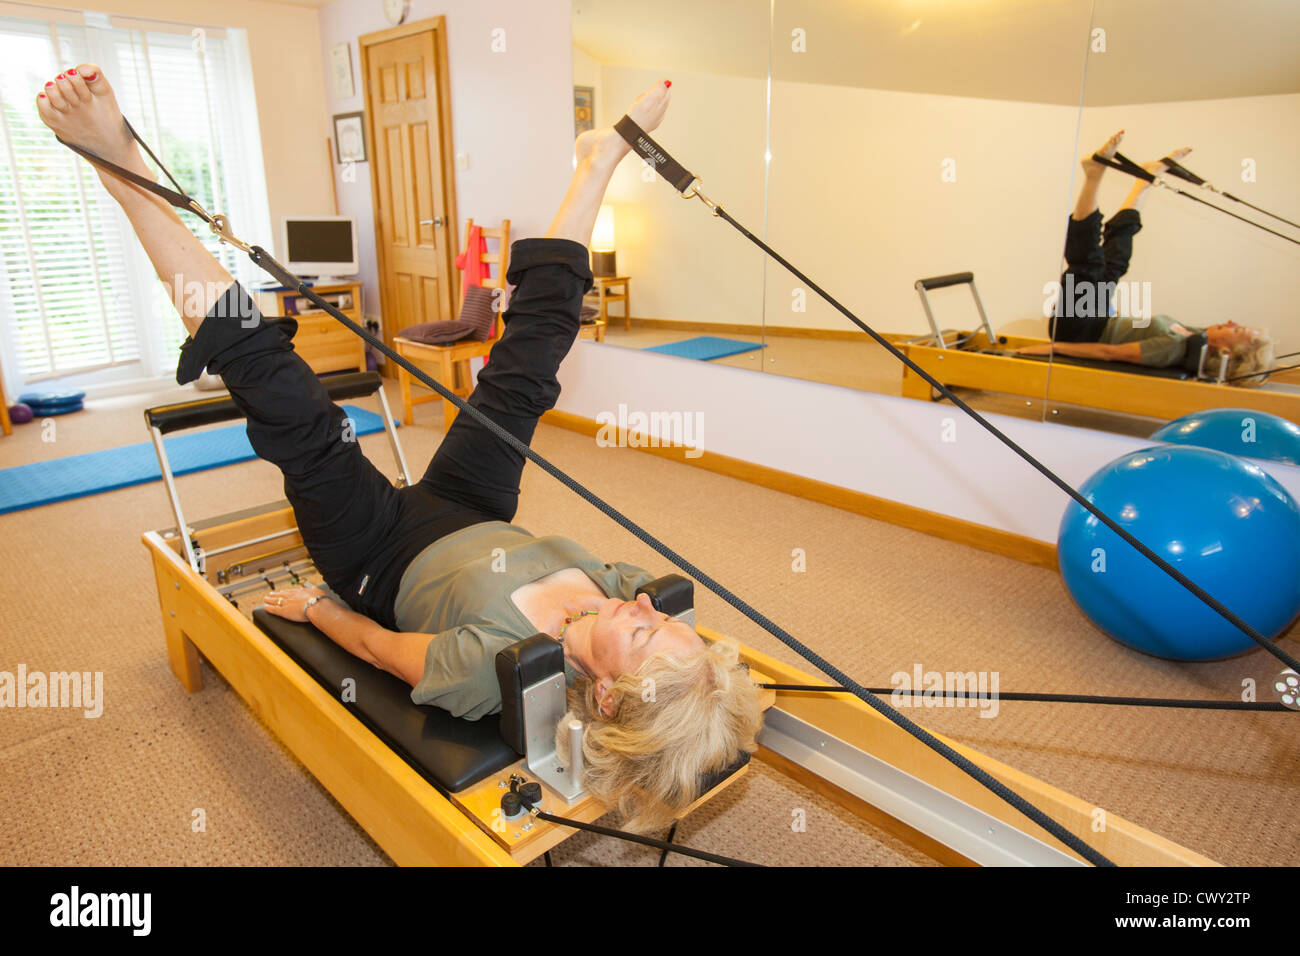 A Pilates instructor using a pilates reformer machine. - Stock Image